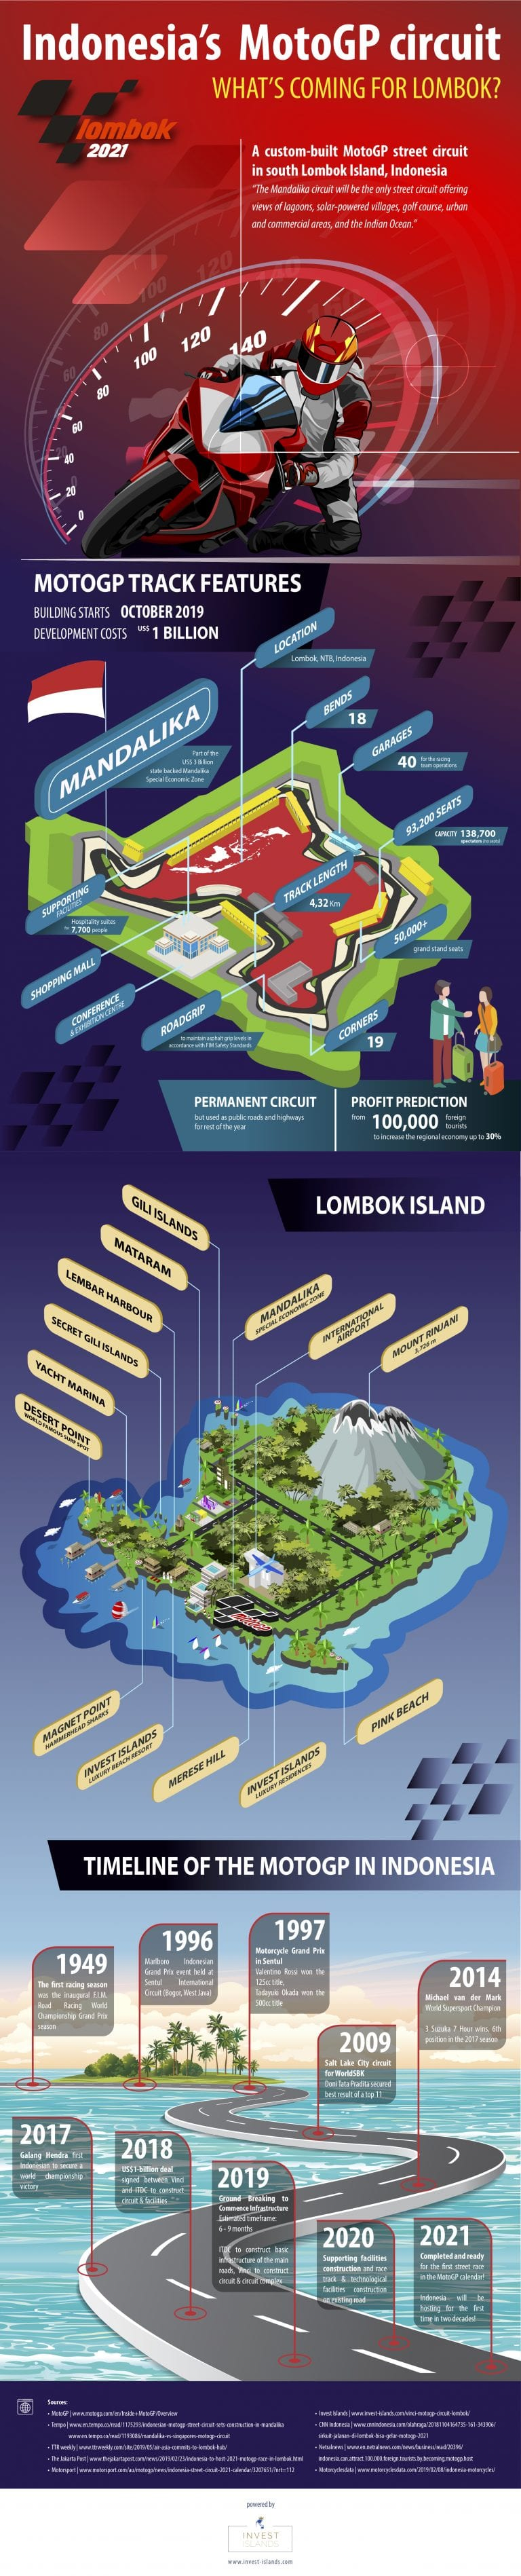 The MotoGP Lombok 2021: The Story Behind The Mandalika Circuit In Indonesia #infographic